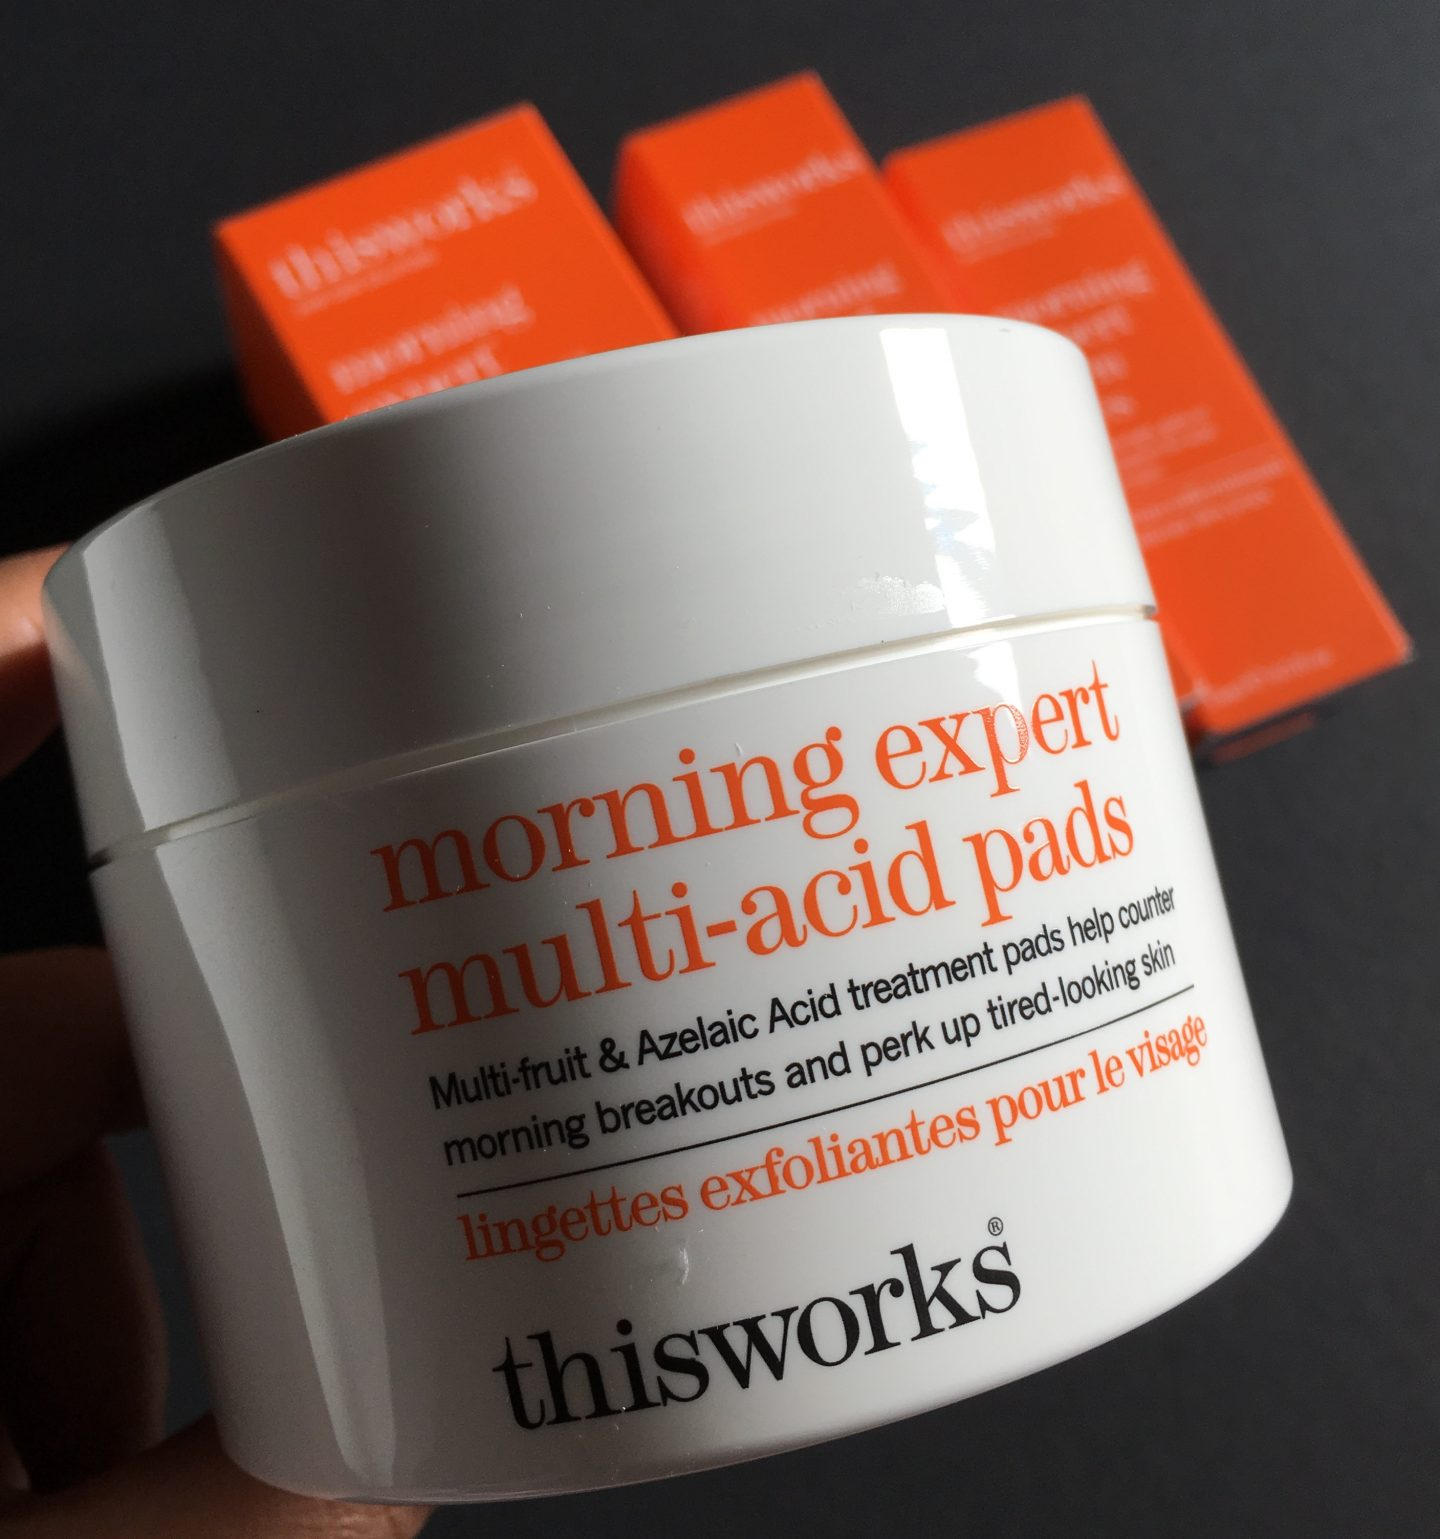 Morning Expert Multi Acid Pads